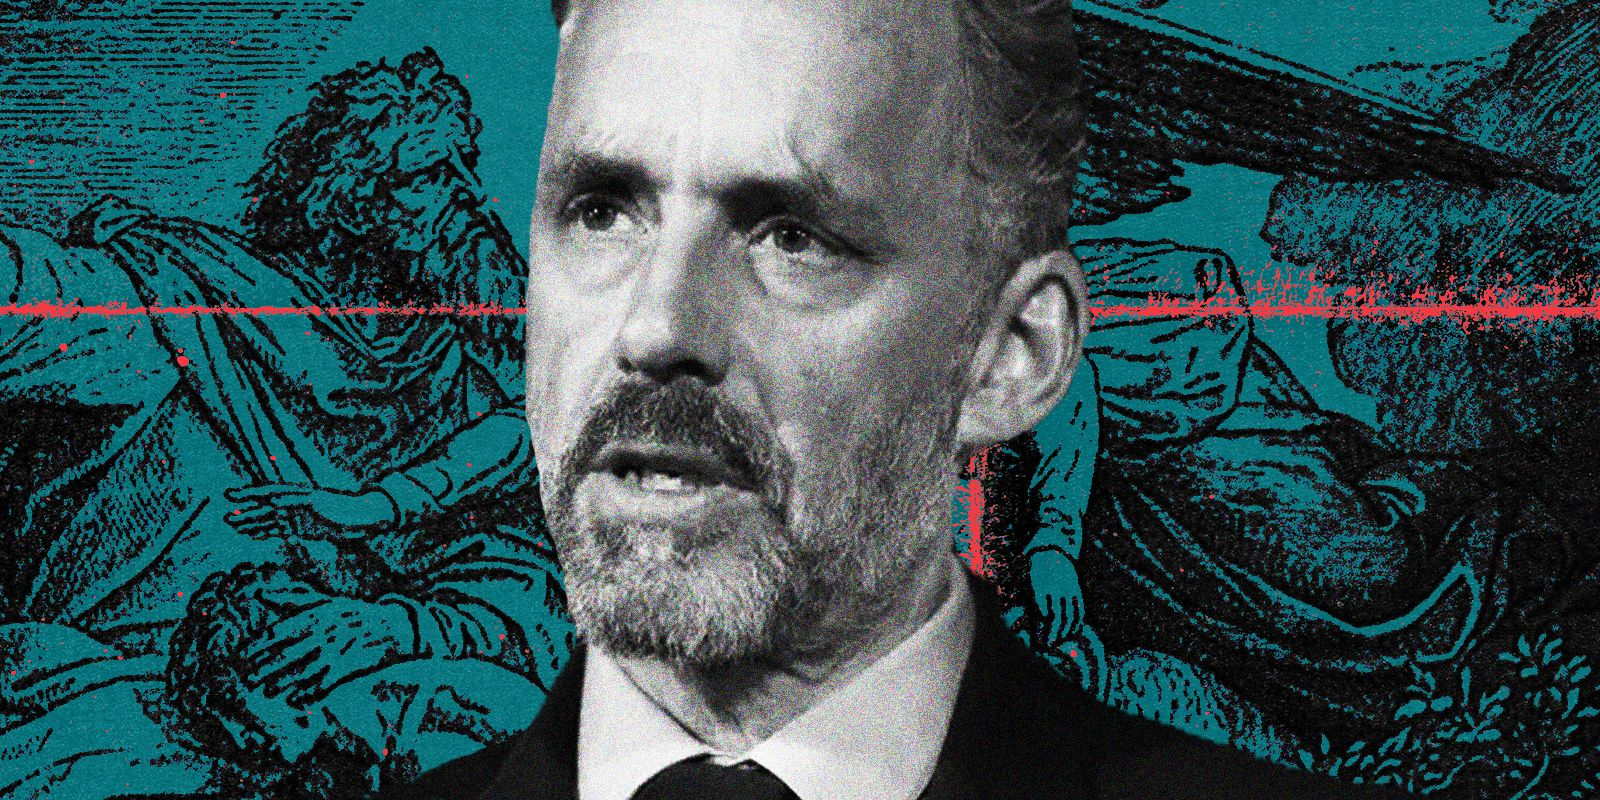 Five rules from the Bible: Revisiting Jordan Peterson's viral lecture series